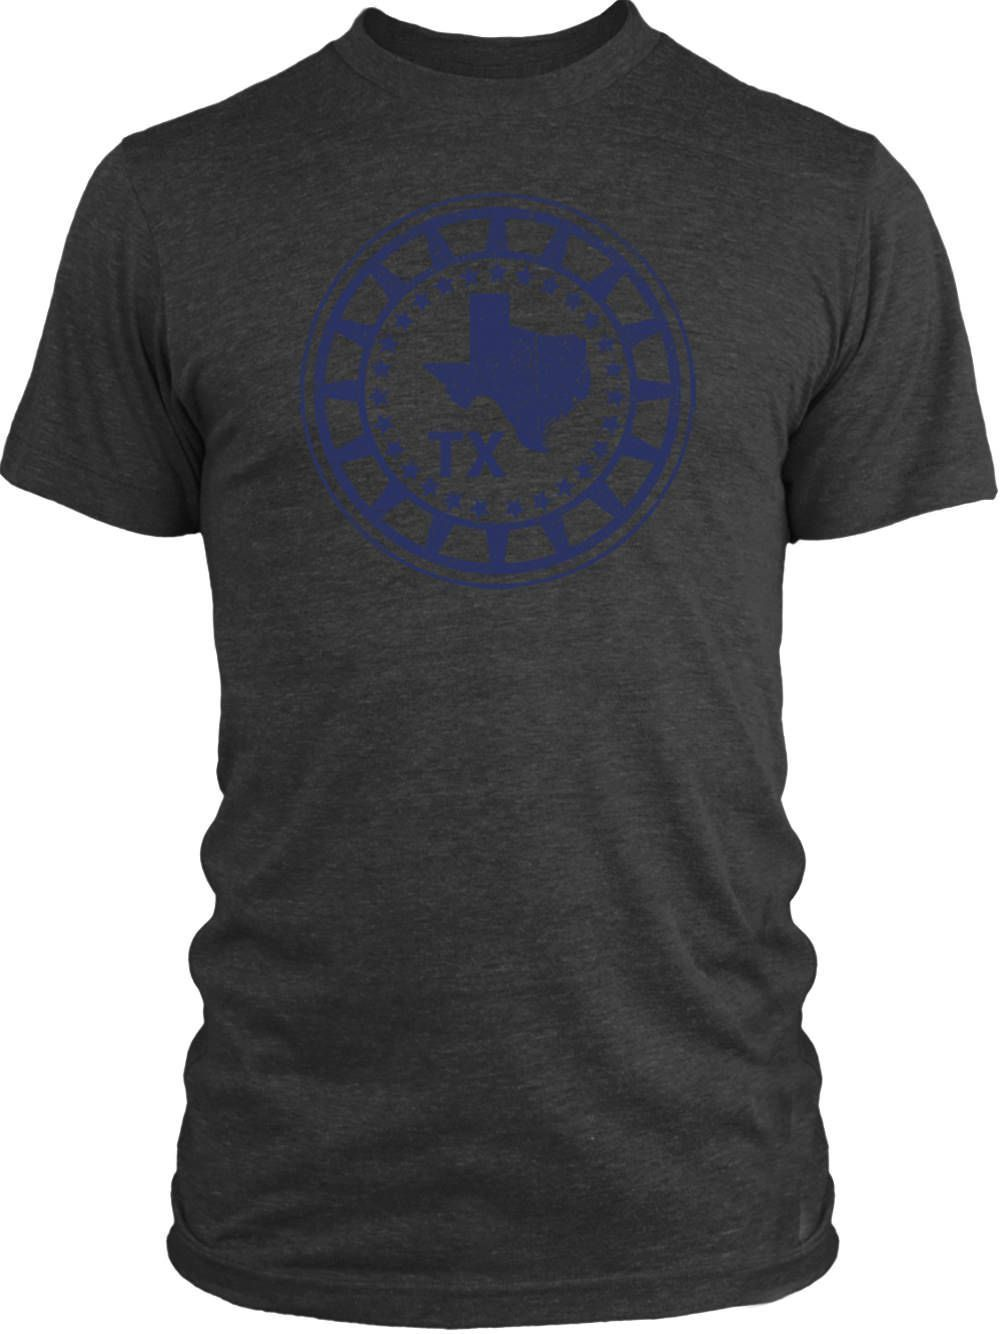 Big Texas Texas Emblem Vintage Tri-Blend T-Shirt